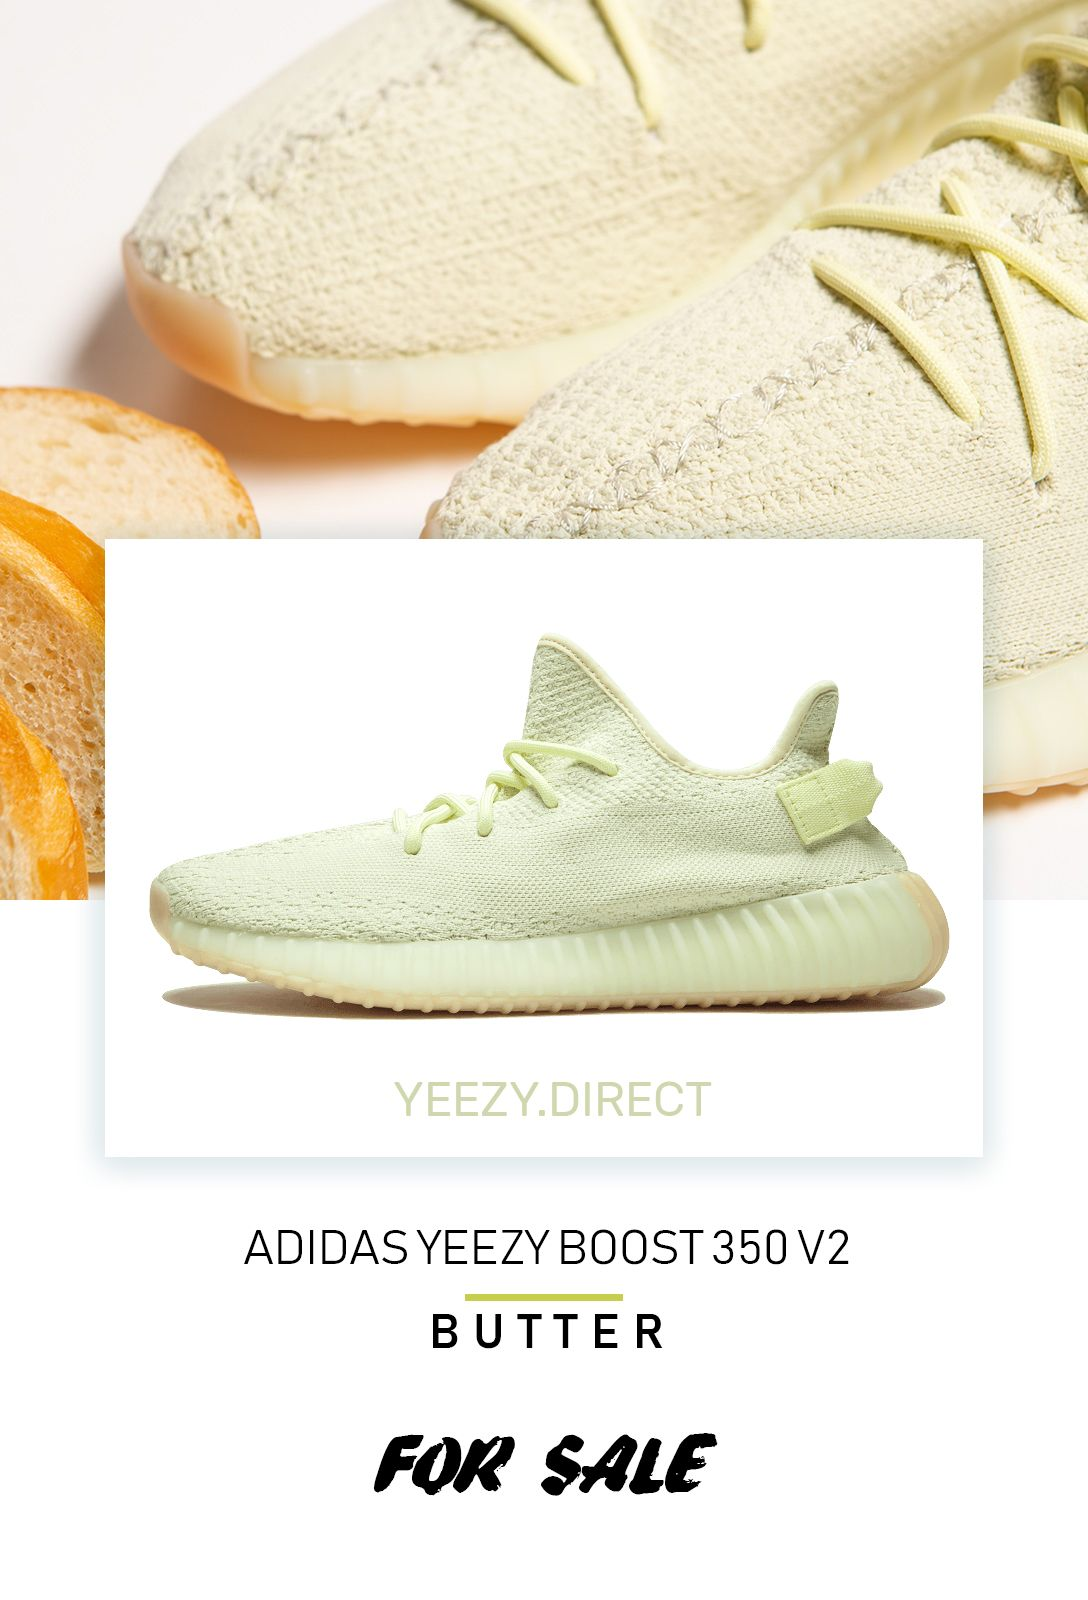 Adidas Yeezy Boost 350 V2 Butter Free Shipping Worldwide